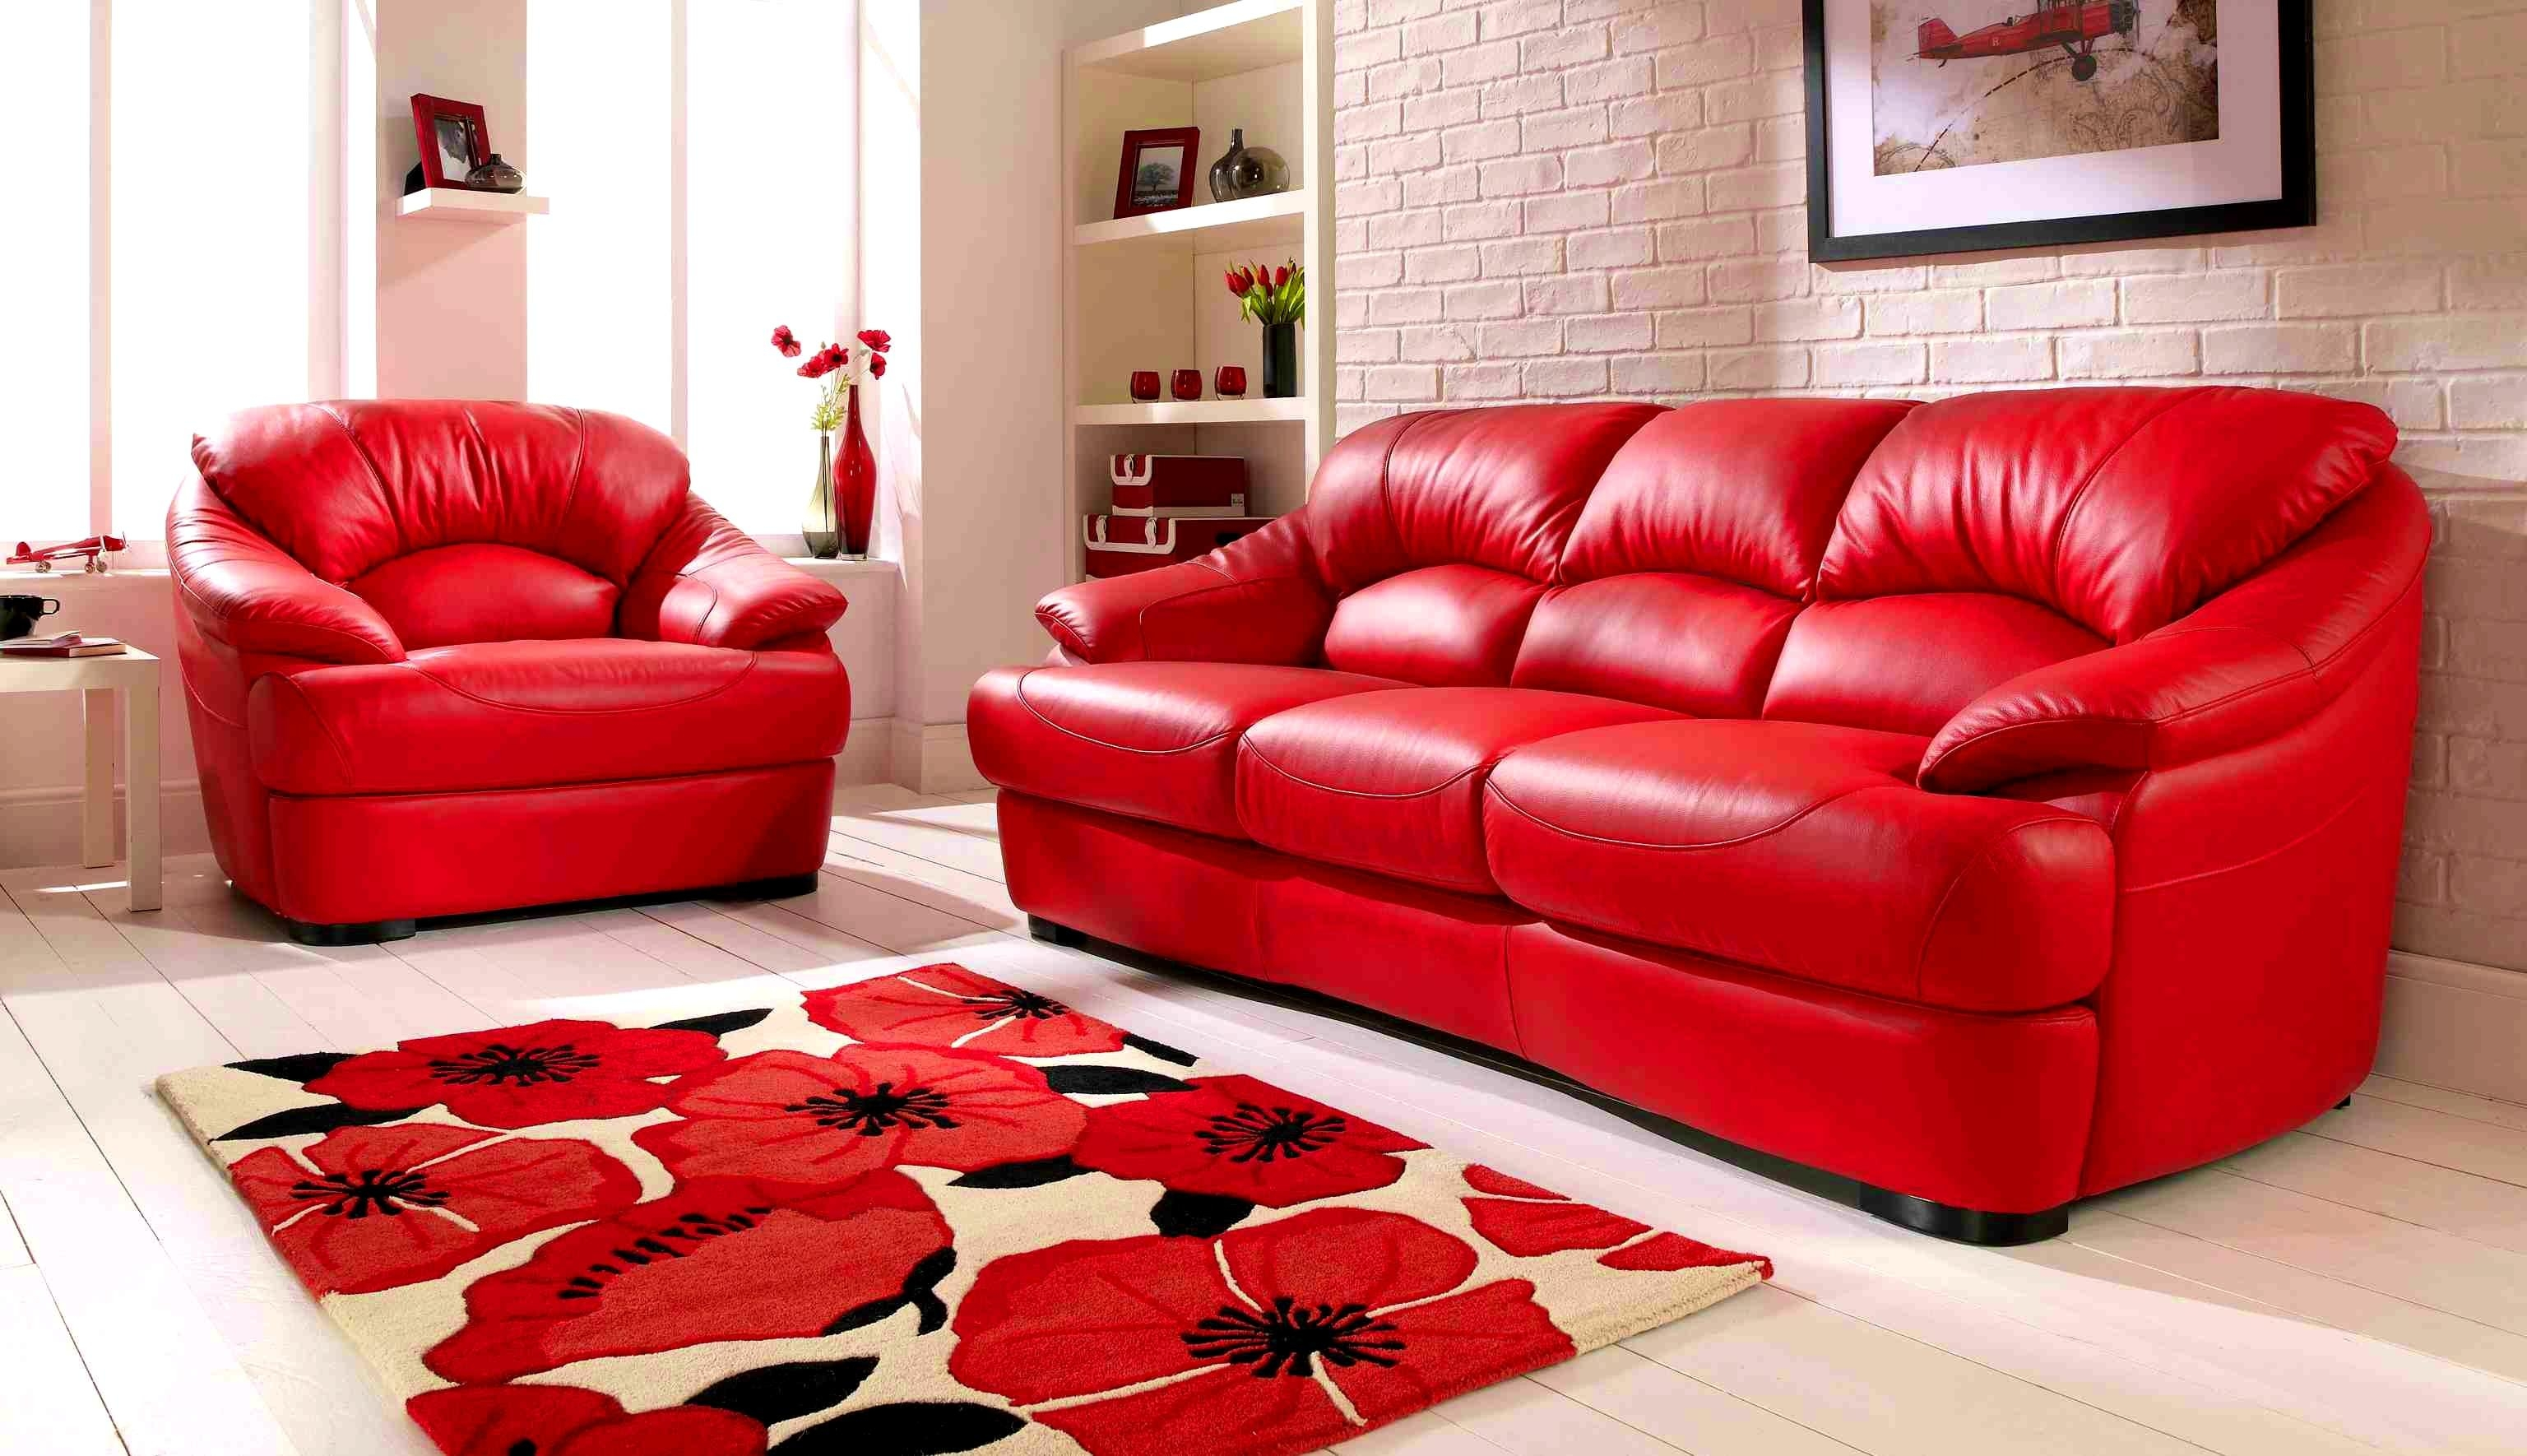 Cheap Red Sofas In Cheap Red Sofas (Image 3 of 20)